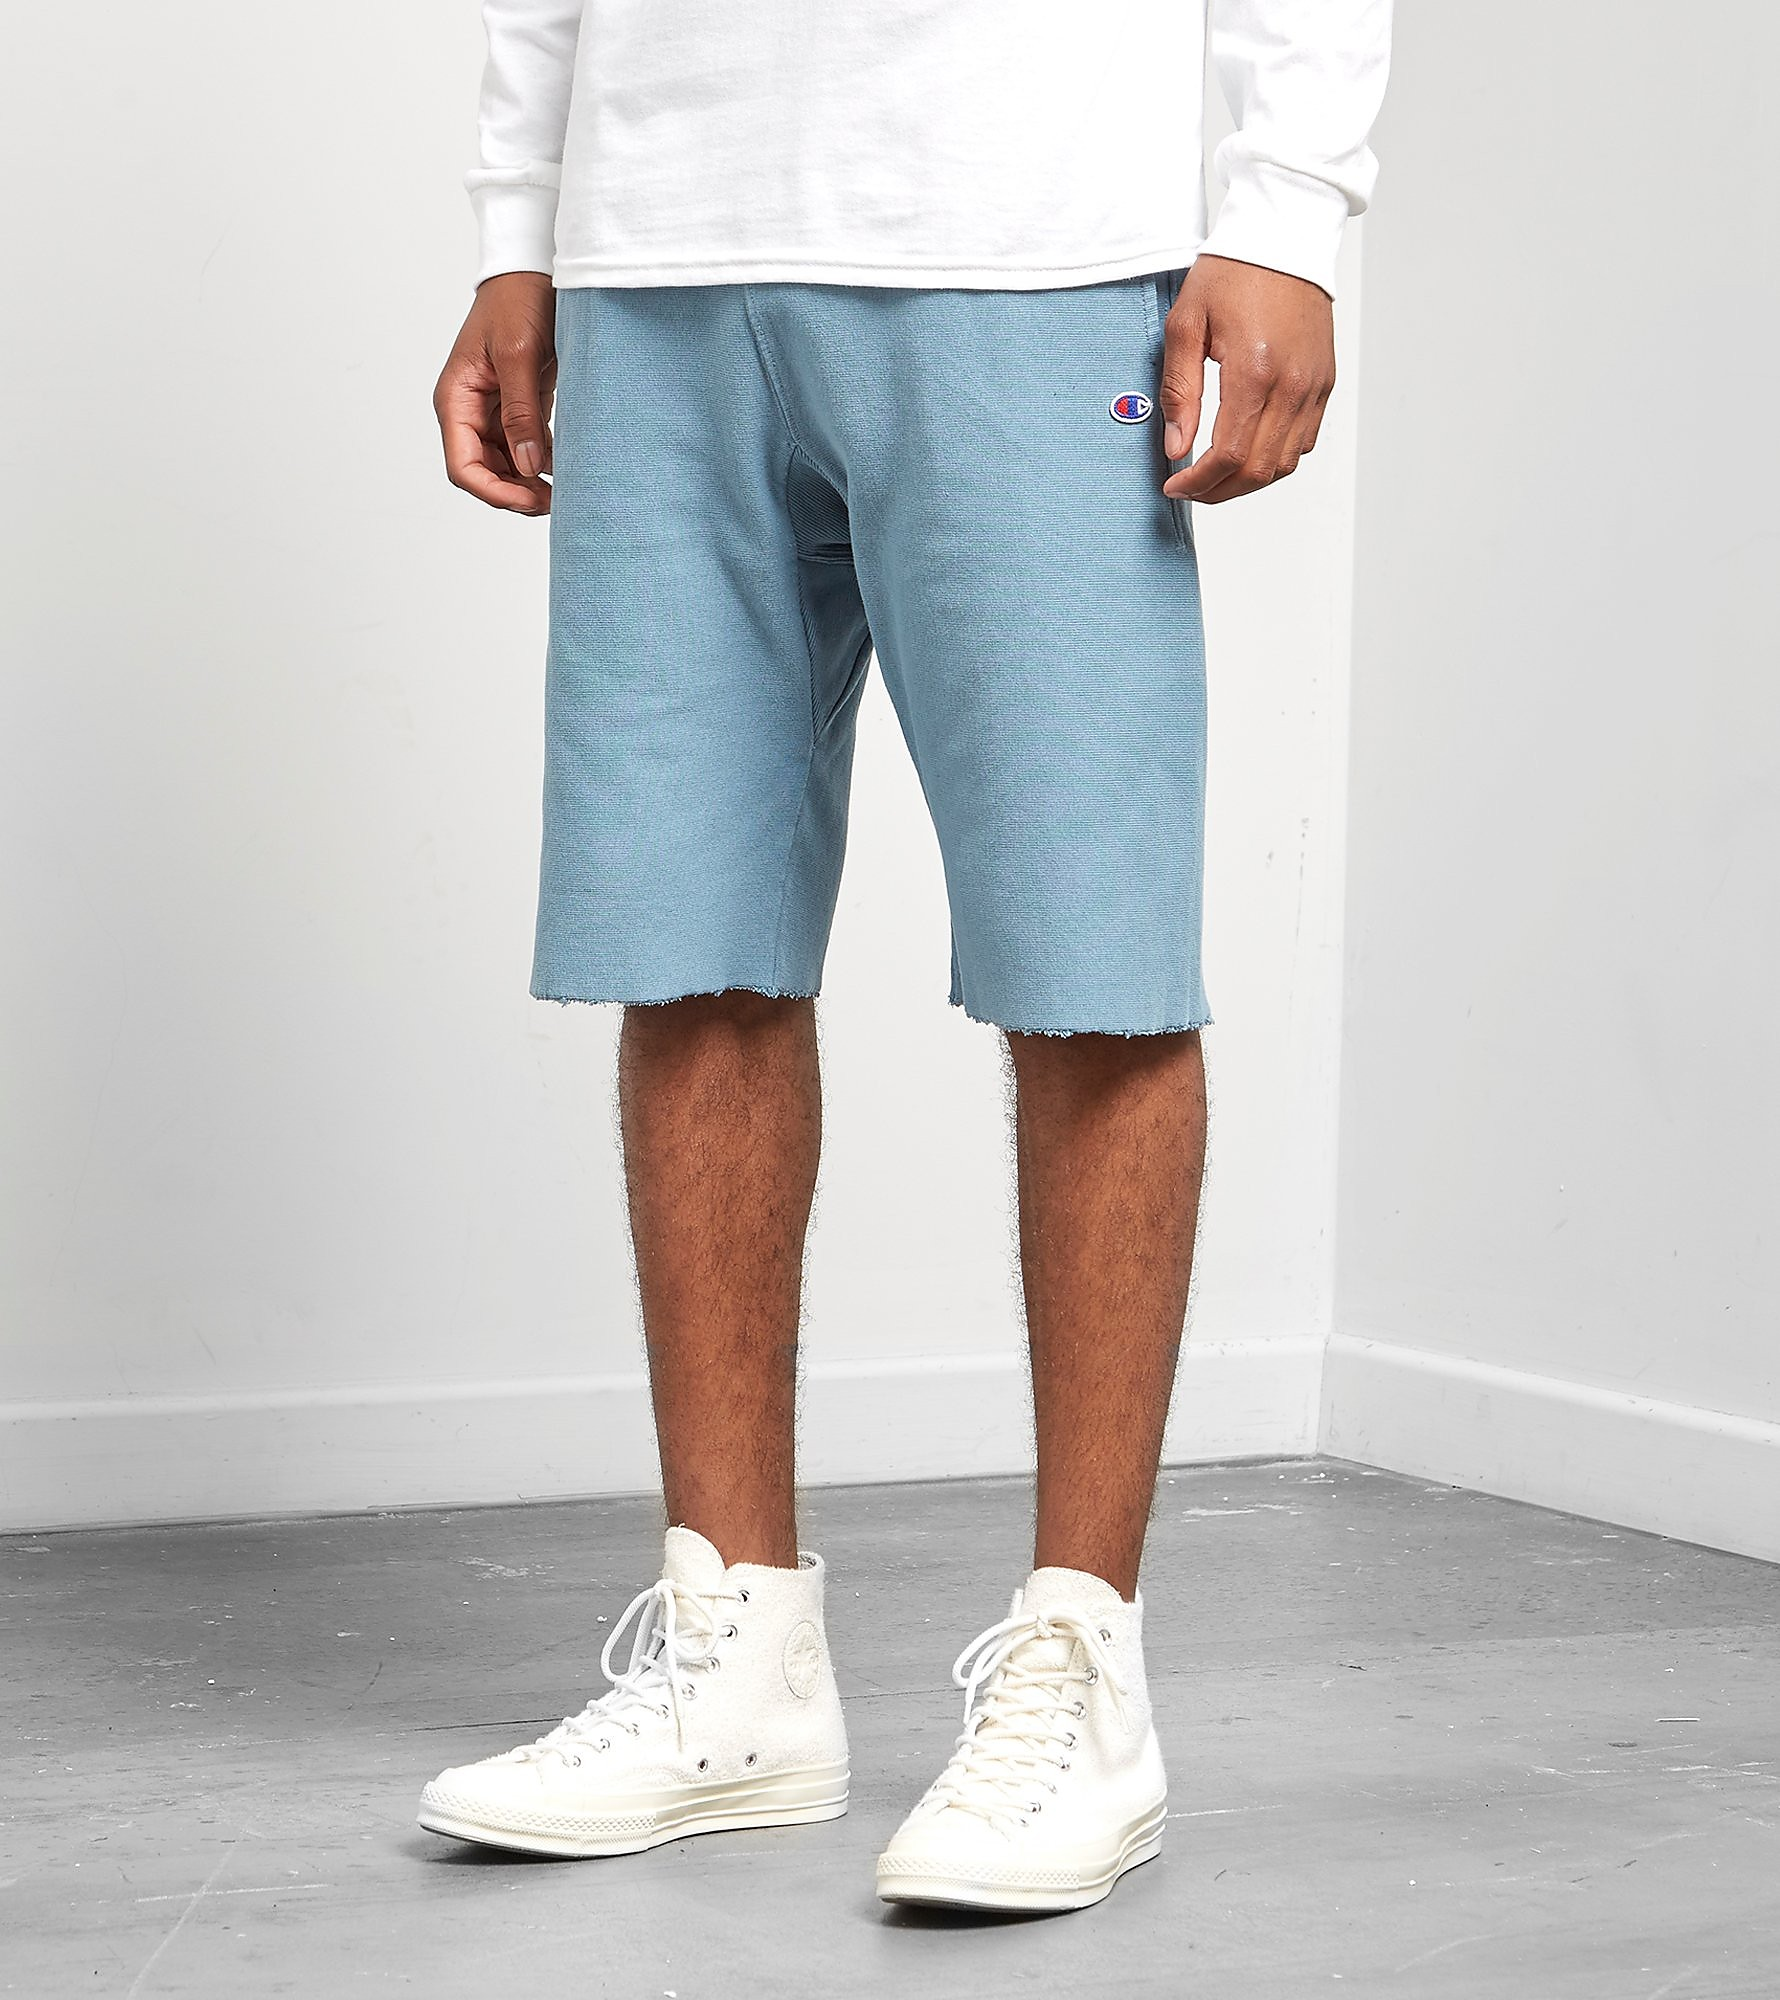 Champion GD Shorts - size? Exclusive